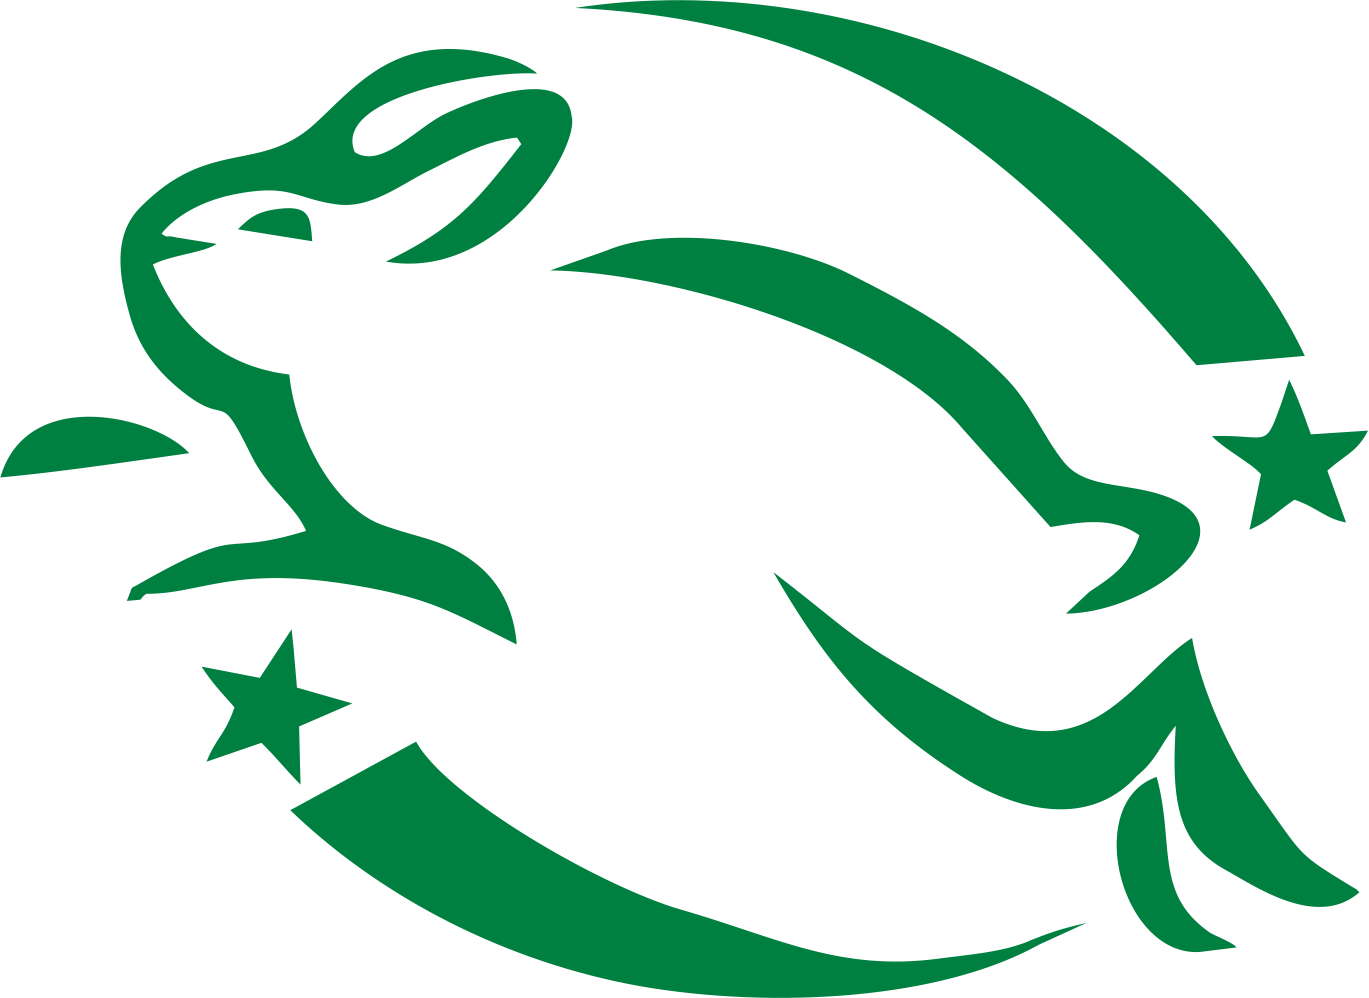 Libre de crueldad animal